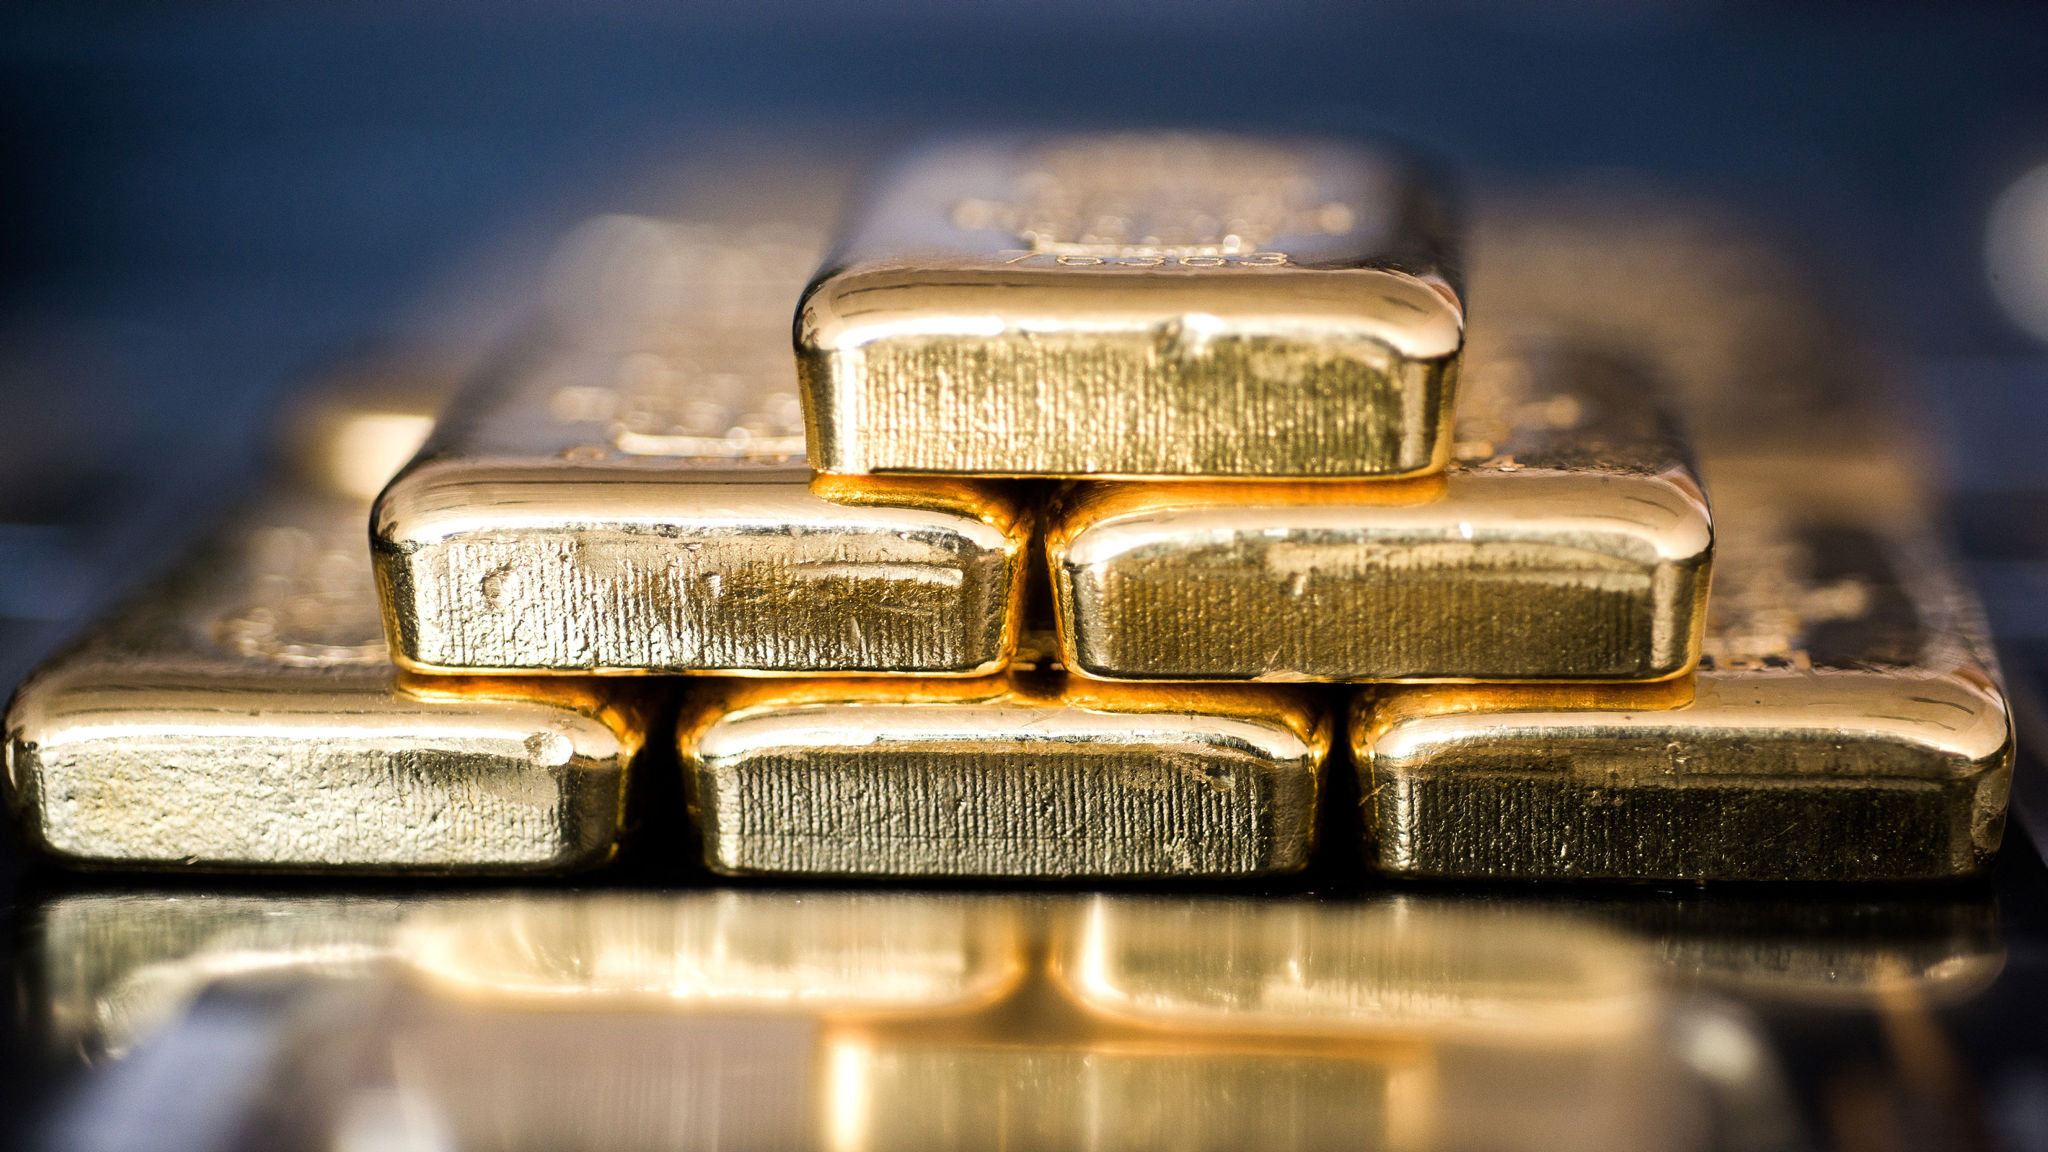 Investors pull gold from Hong Kong as tensions rise